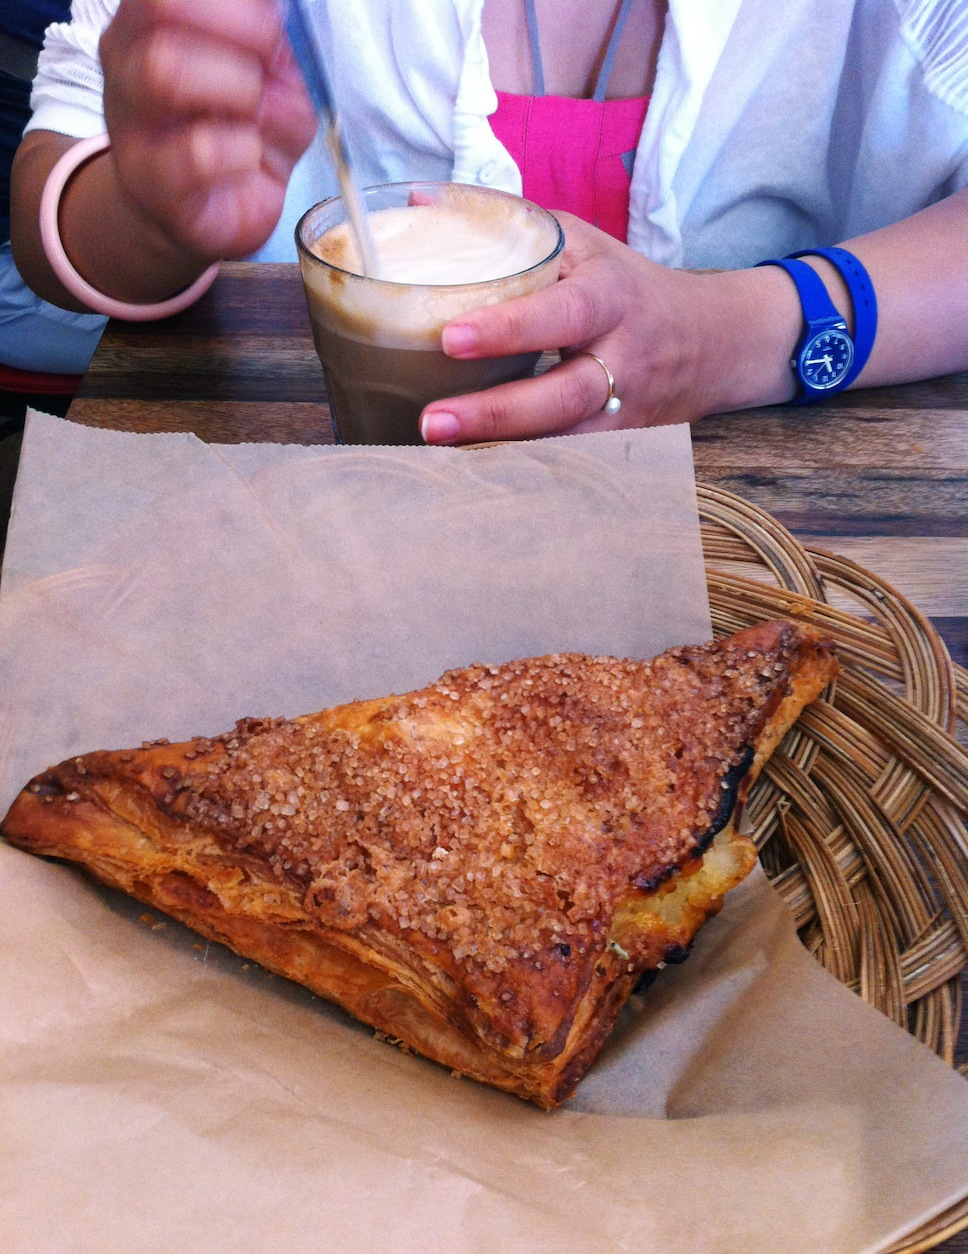 Apple turnover, with one of the best lattes I've had since ...